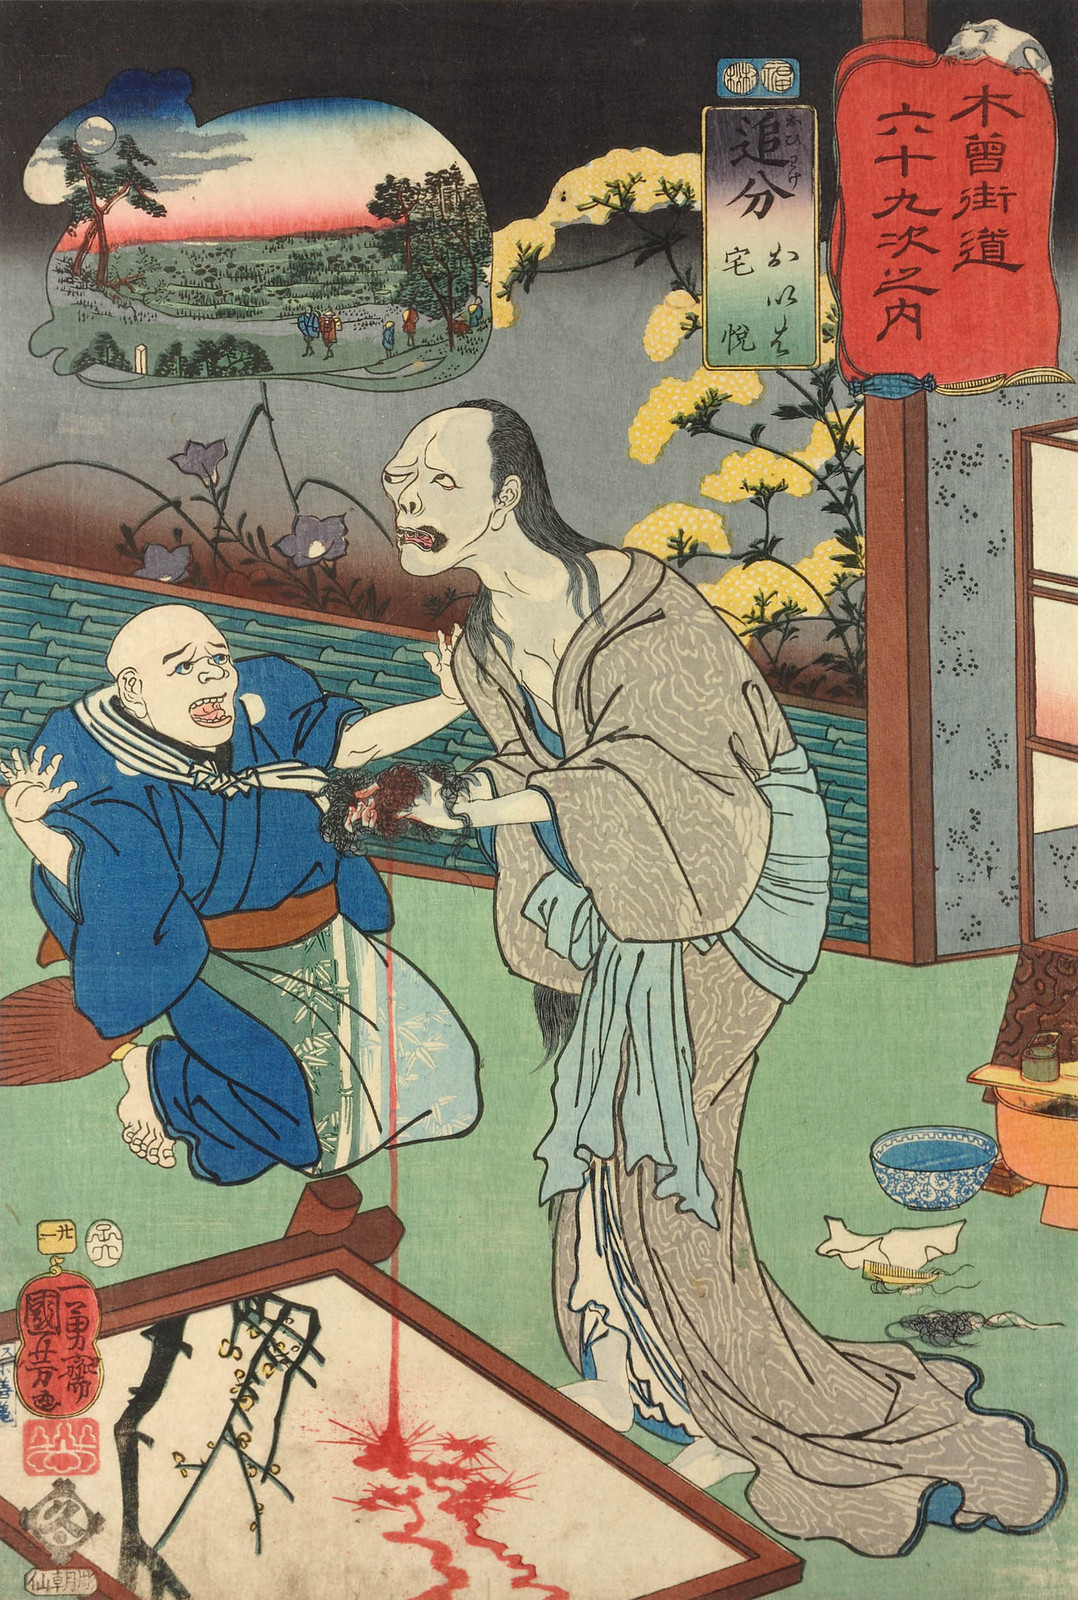 Utagawa Kuniyoshi - Oiwake- Oiwa and Takuetsu, from the series Sixty-nine Stations of the Kisokaidô Road (Kisokaidô rokujûkyû tsugi no uchi) 1852